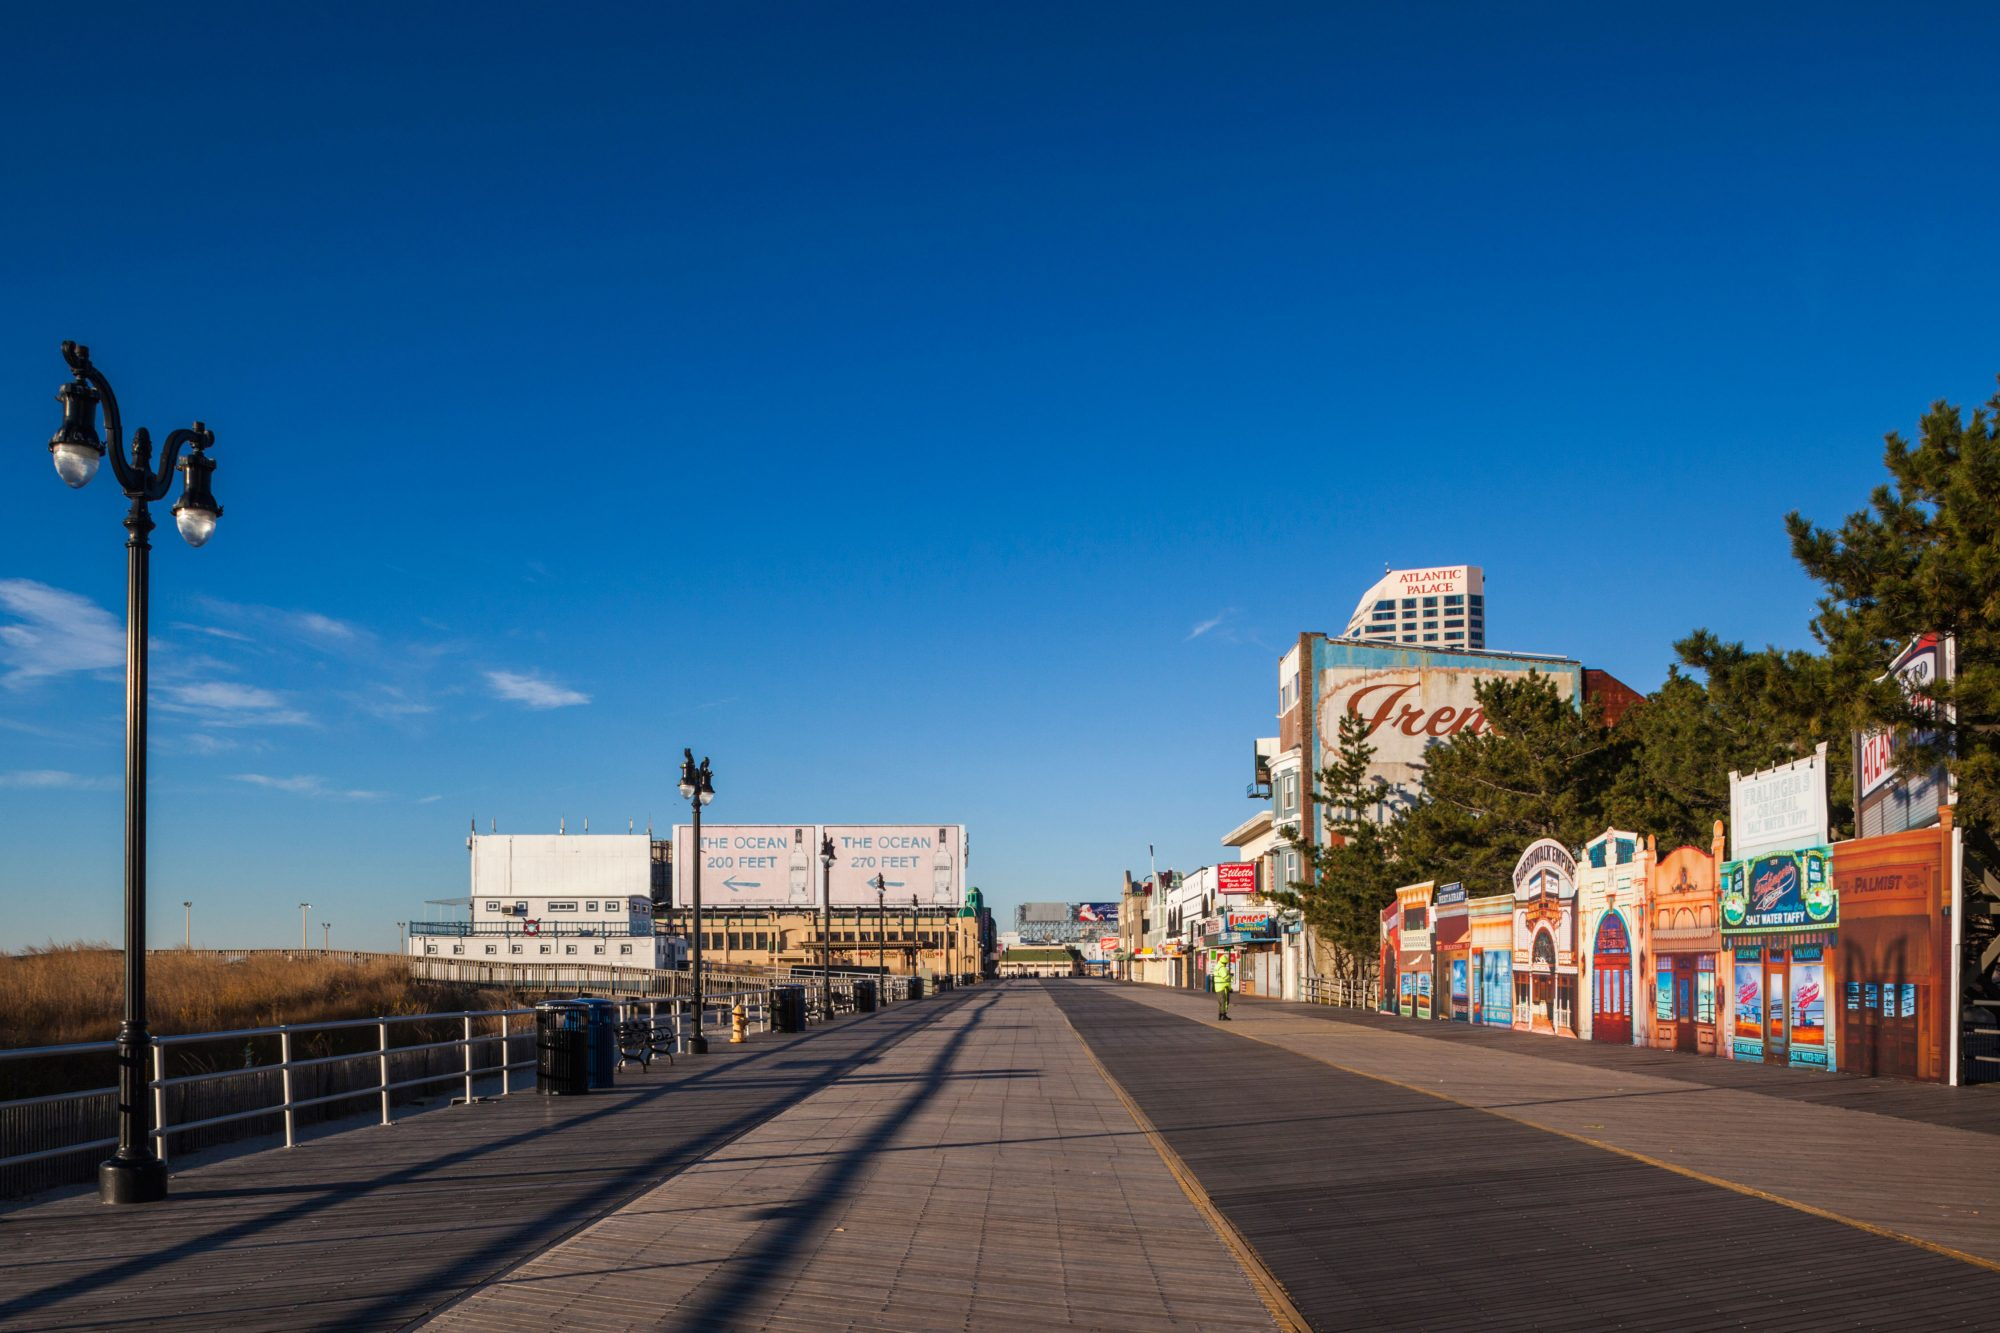 Coming at the top of Realtor.com's list with the lowest median home price, this storied beach town might be making a comeback—Atlantic City home prices haven't quite bounced back from their recession lows, keeping property values near that iconic...